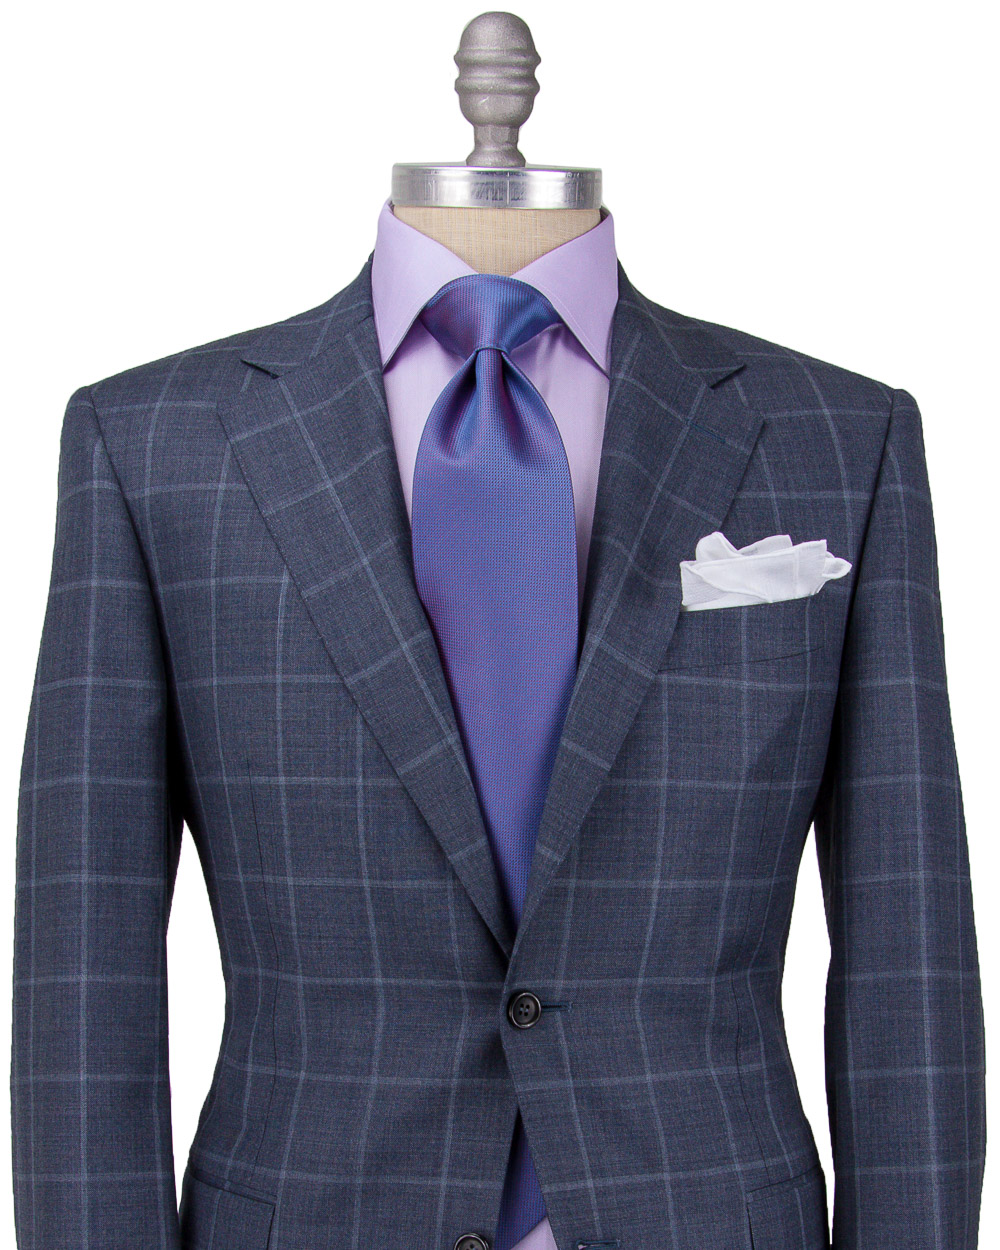 Canali-Grey-Windowpane-Suit-10999307-2295.jpg